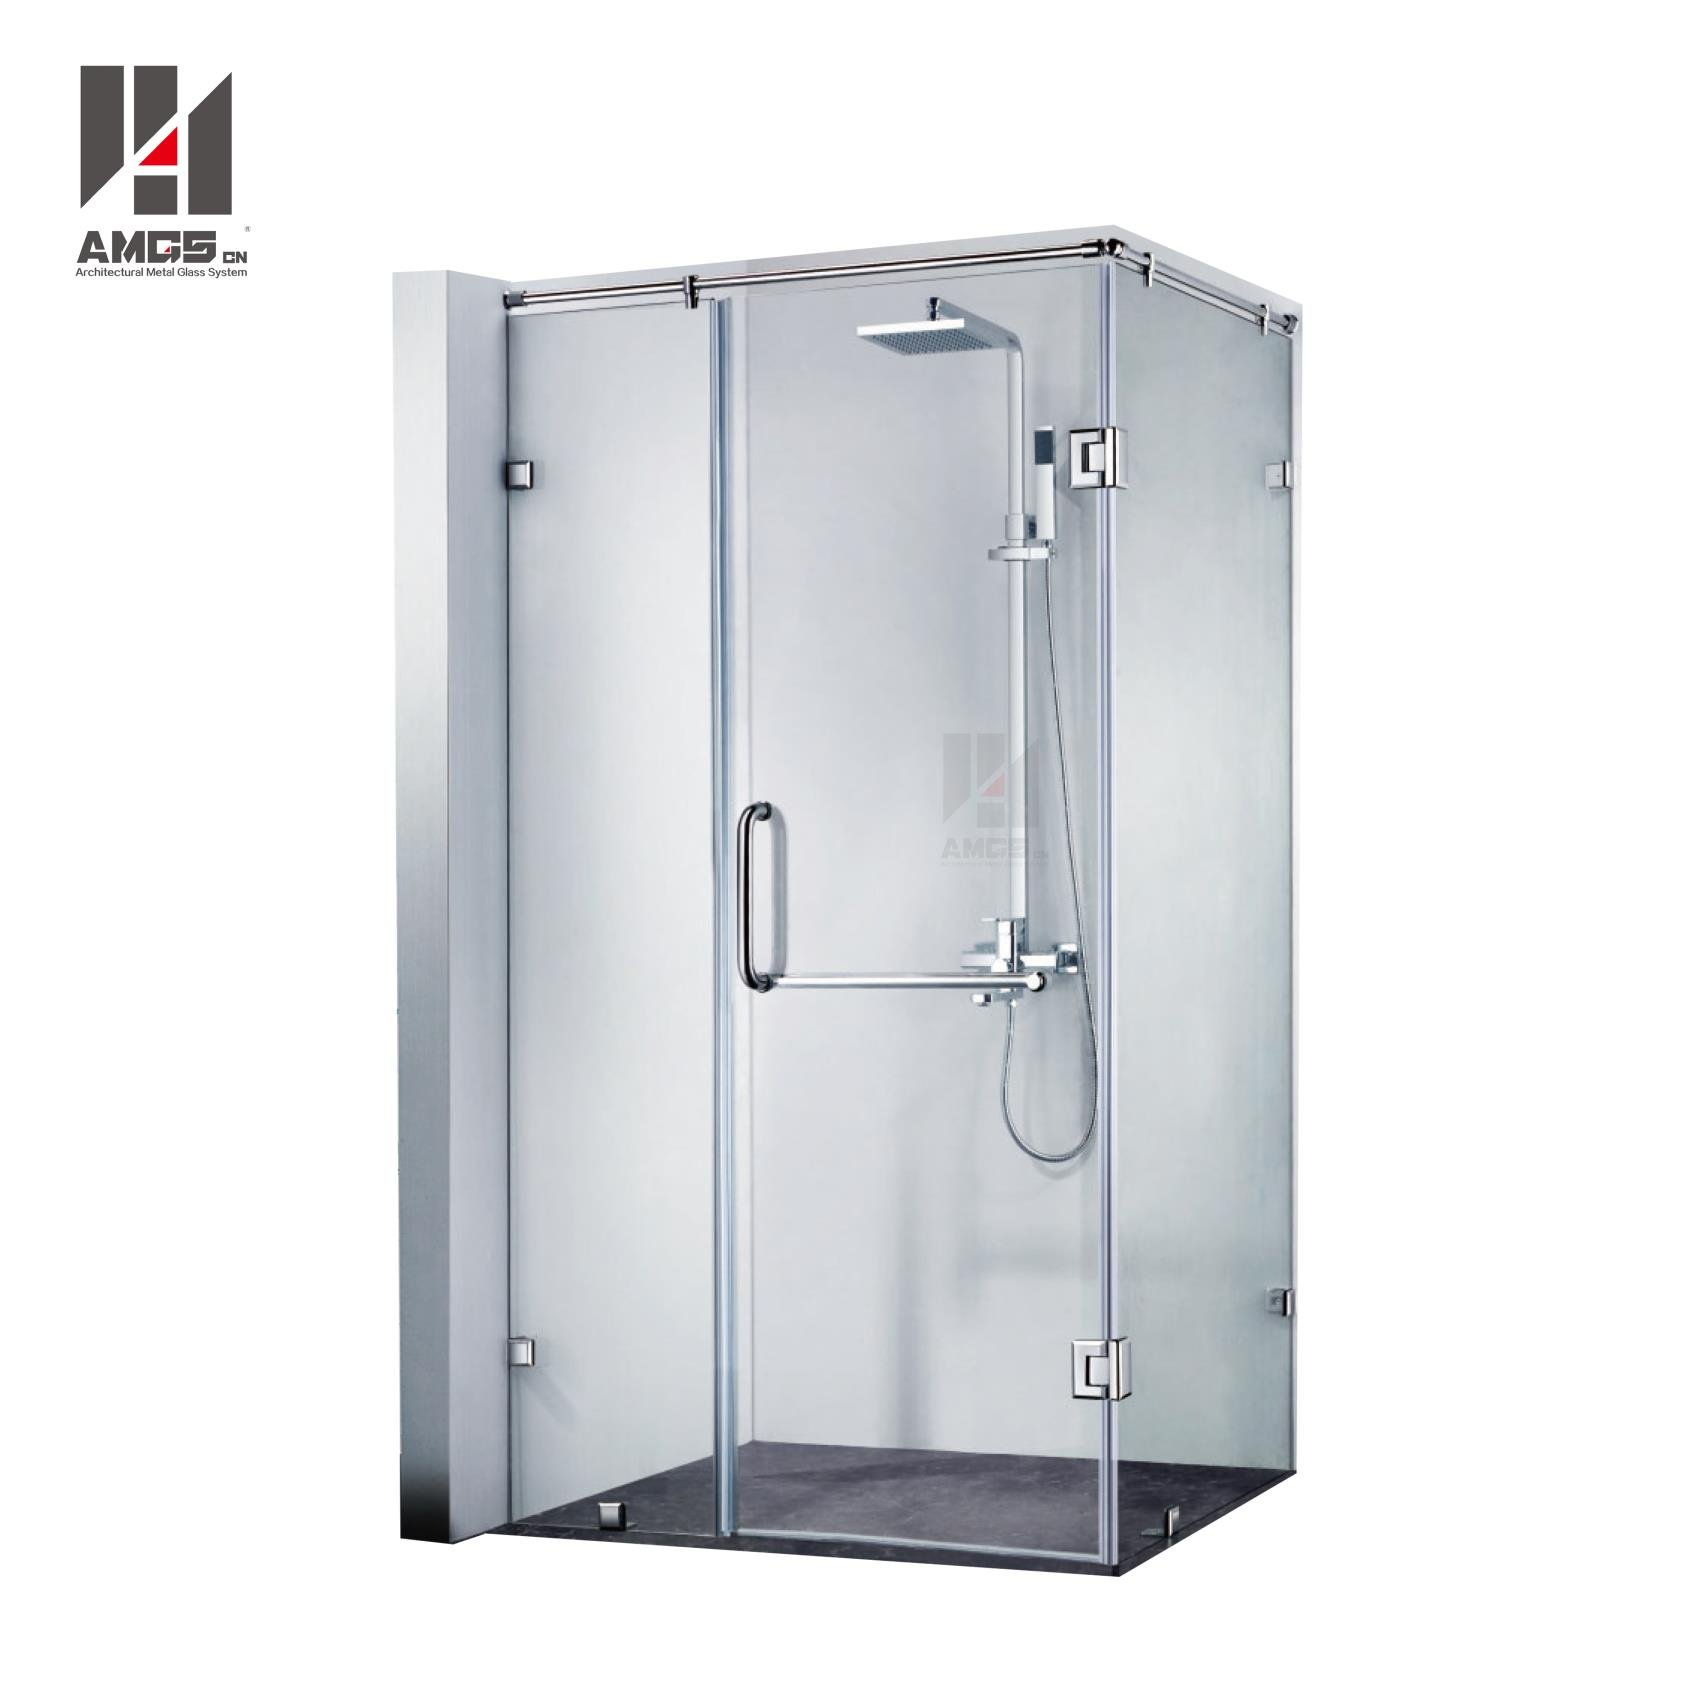 Bathroom Frameless Swing Tempered Clear Glass Shower Doors